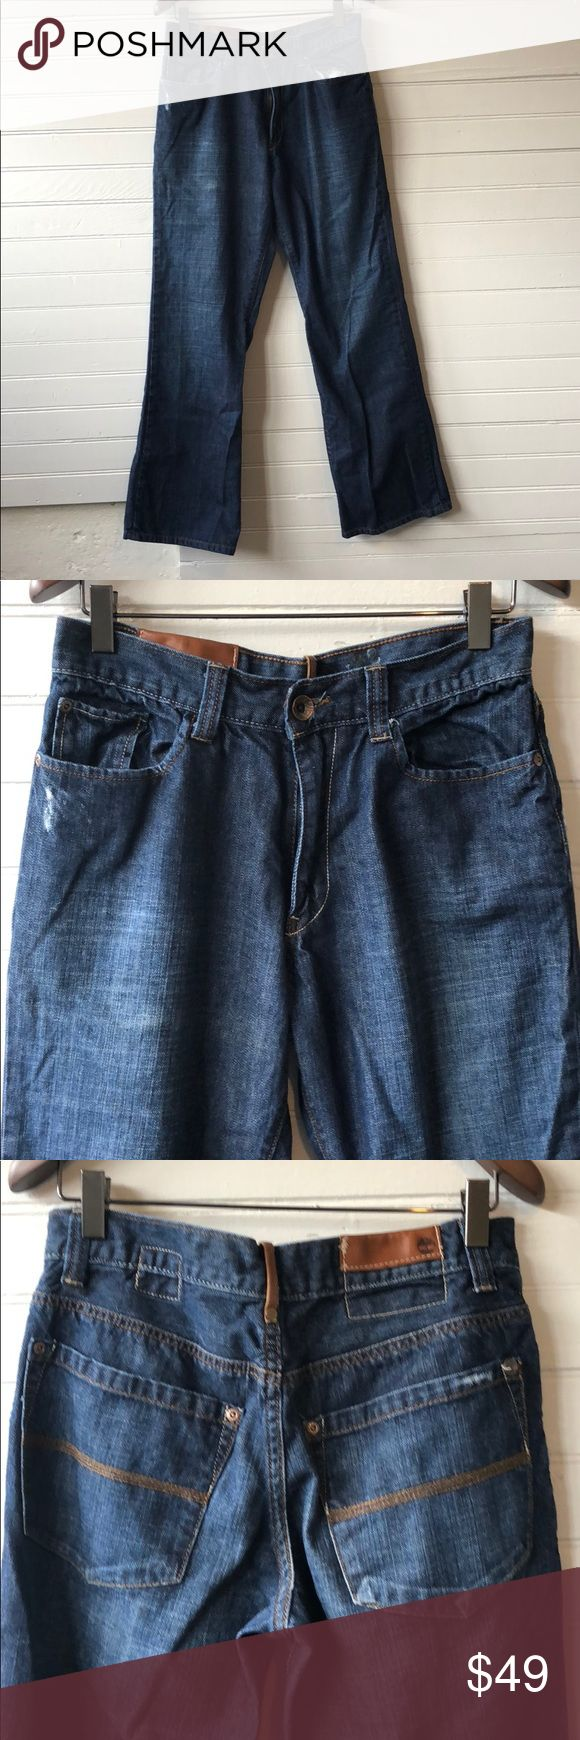 Timberland Jeans Medium to dark wash denim jeans by Timberlin  30 x 32. Like new condition no stains no rips Timberland Jeans Relaxed